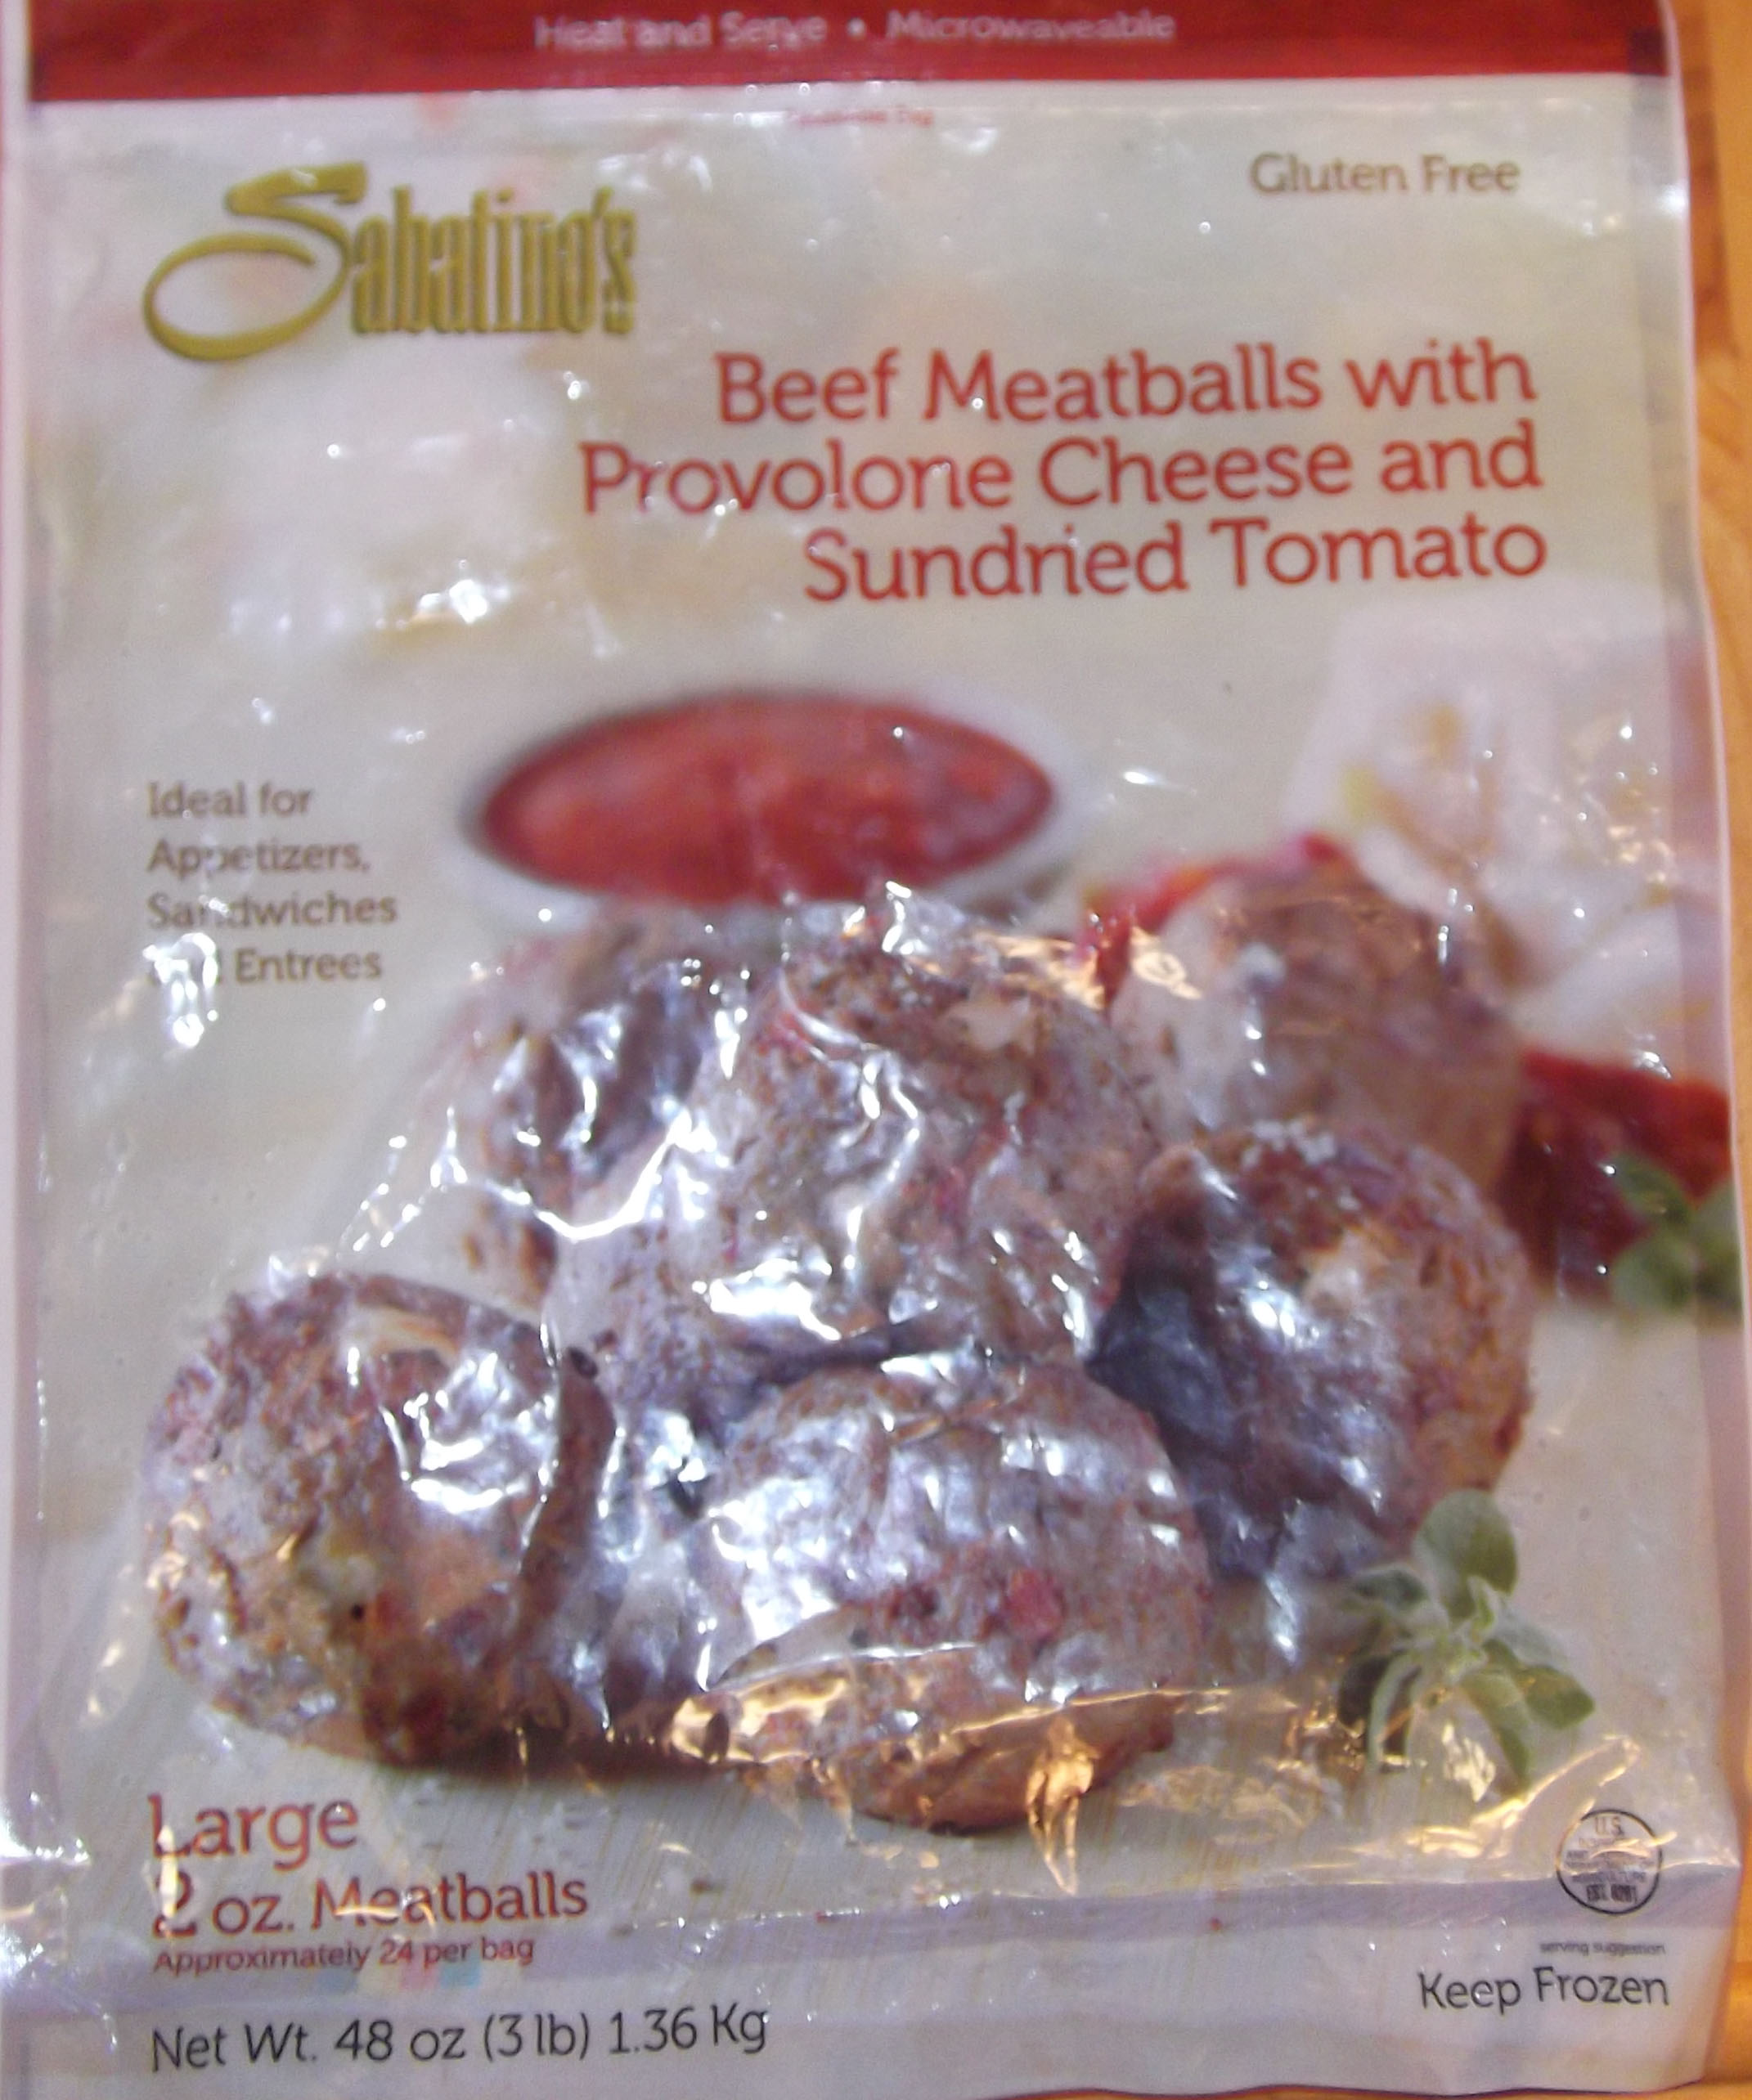 Sabatinos Beef Meatballs with Provolone Cheese and Sundried Tomato